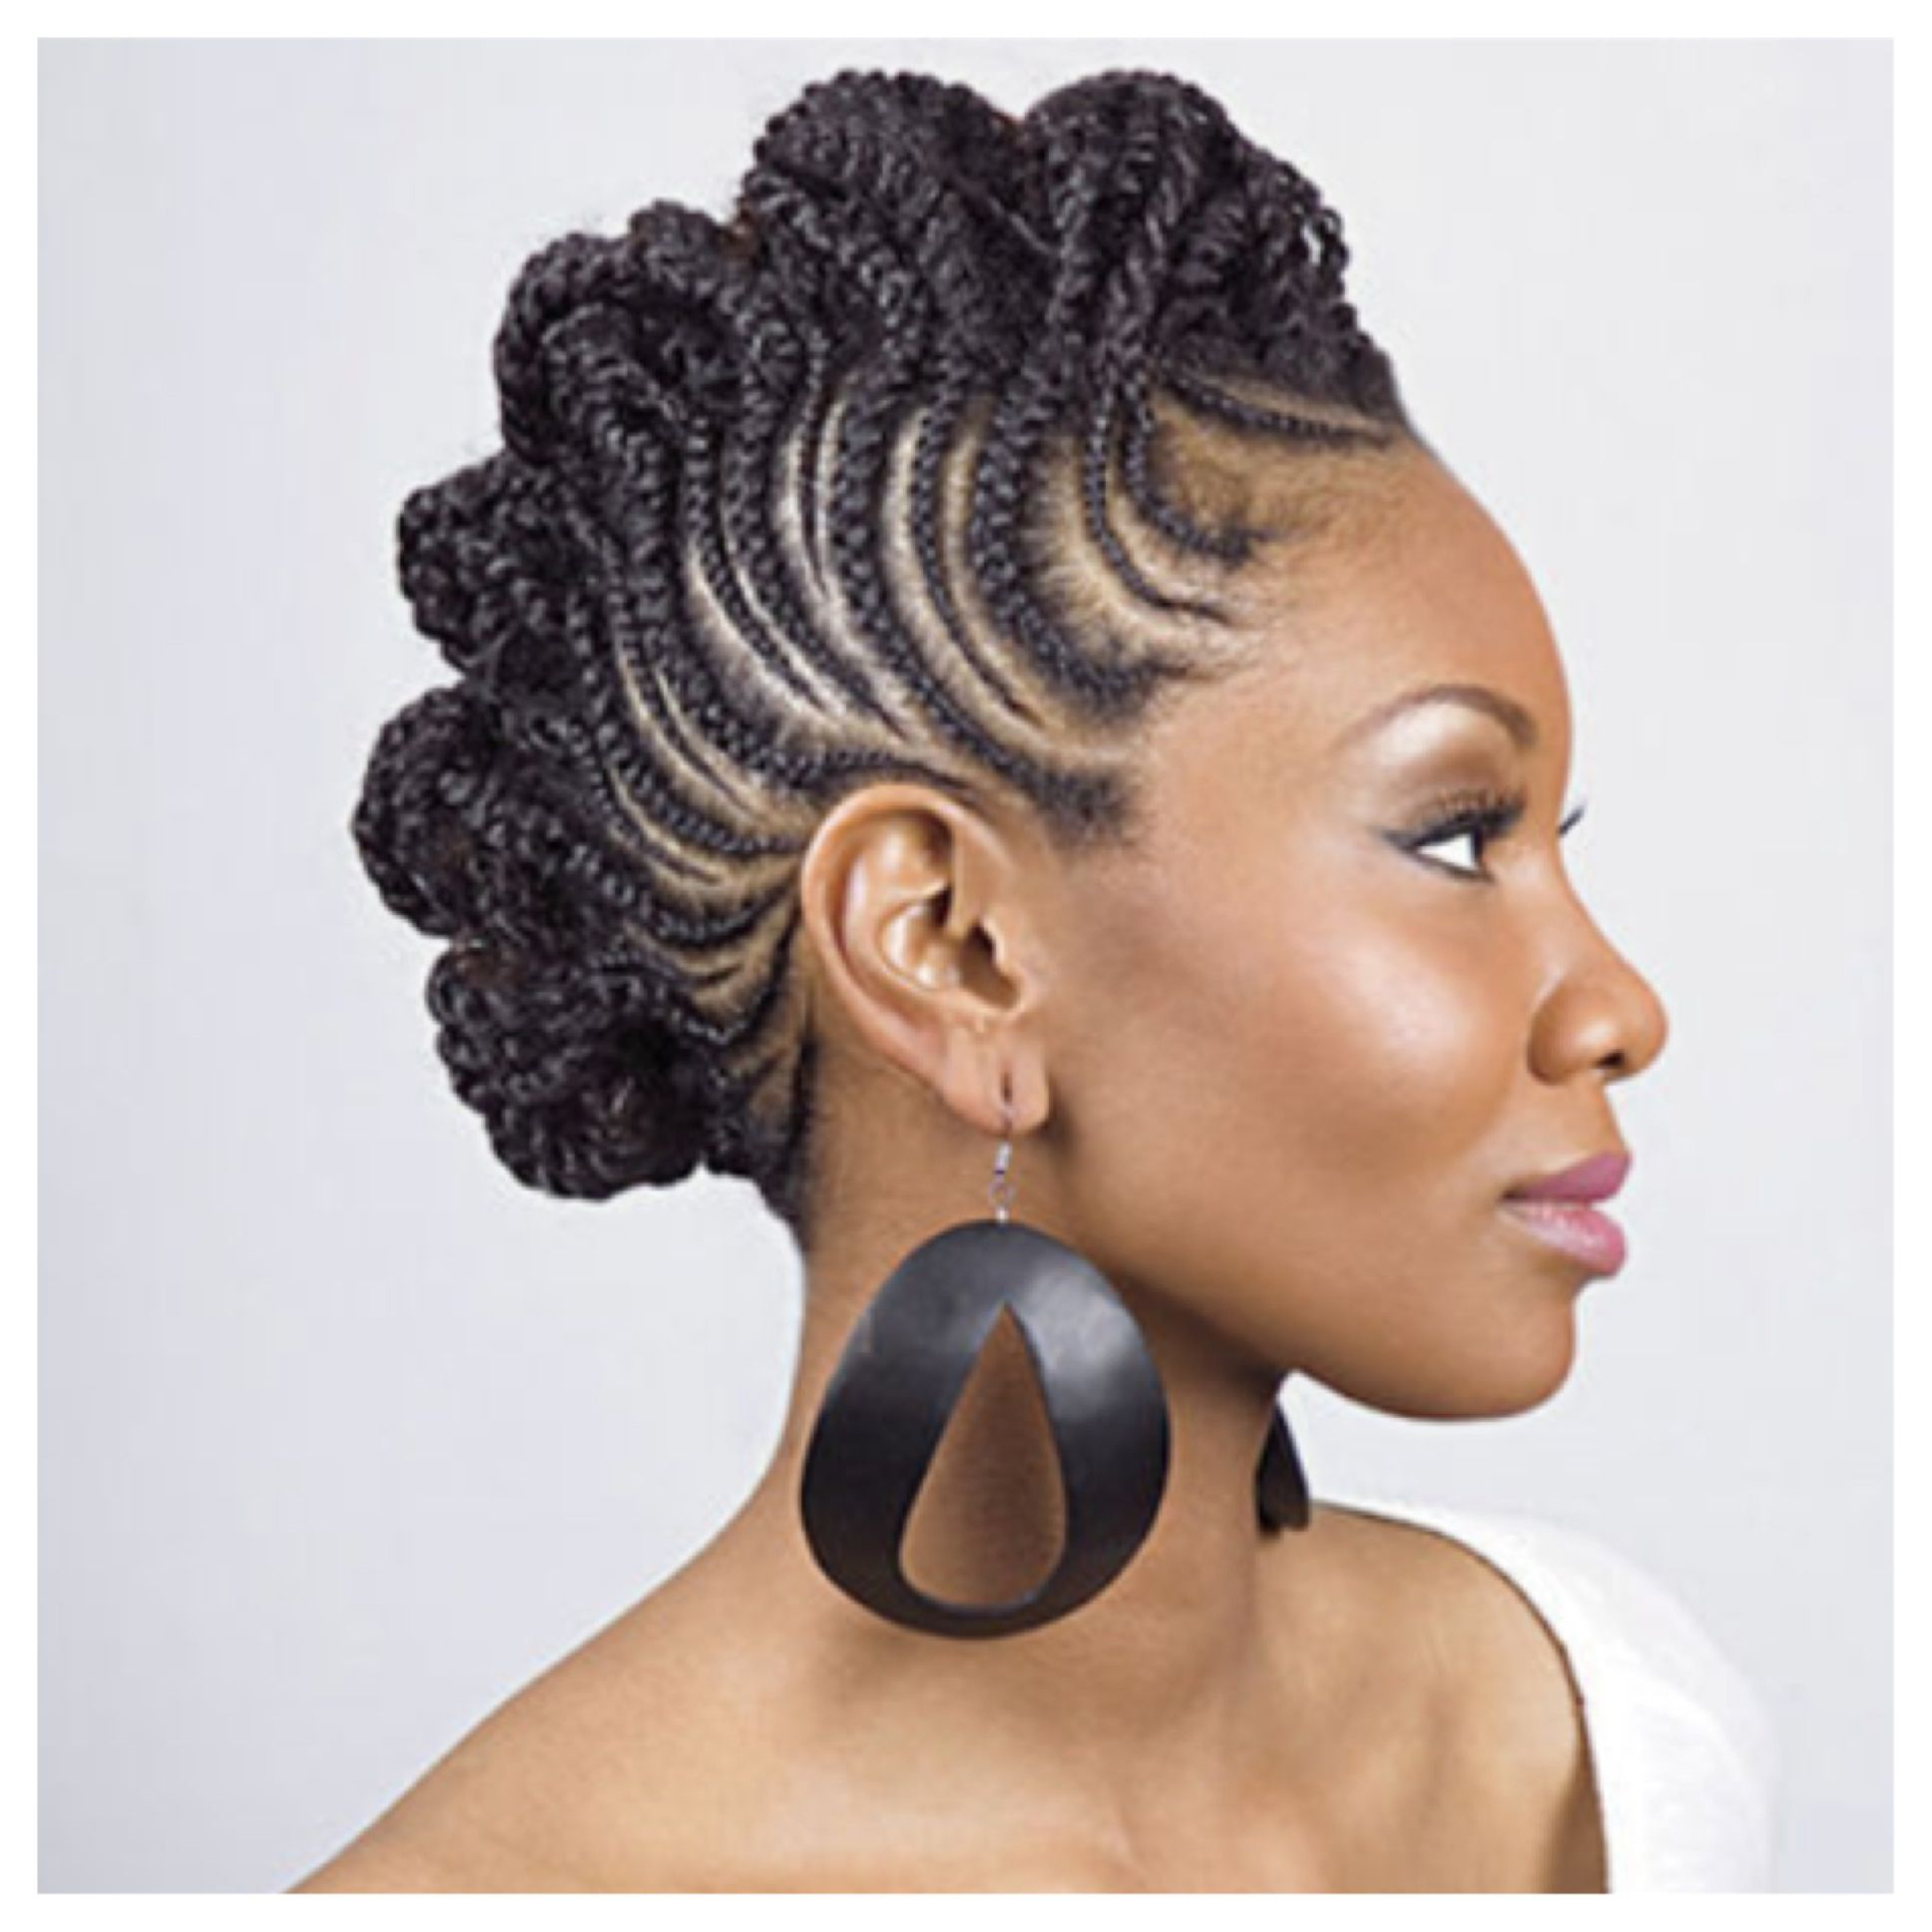 Cute updo natural hairstyles pinterest updo and hair inspiration